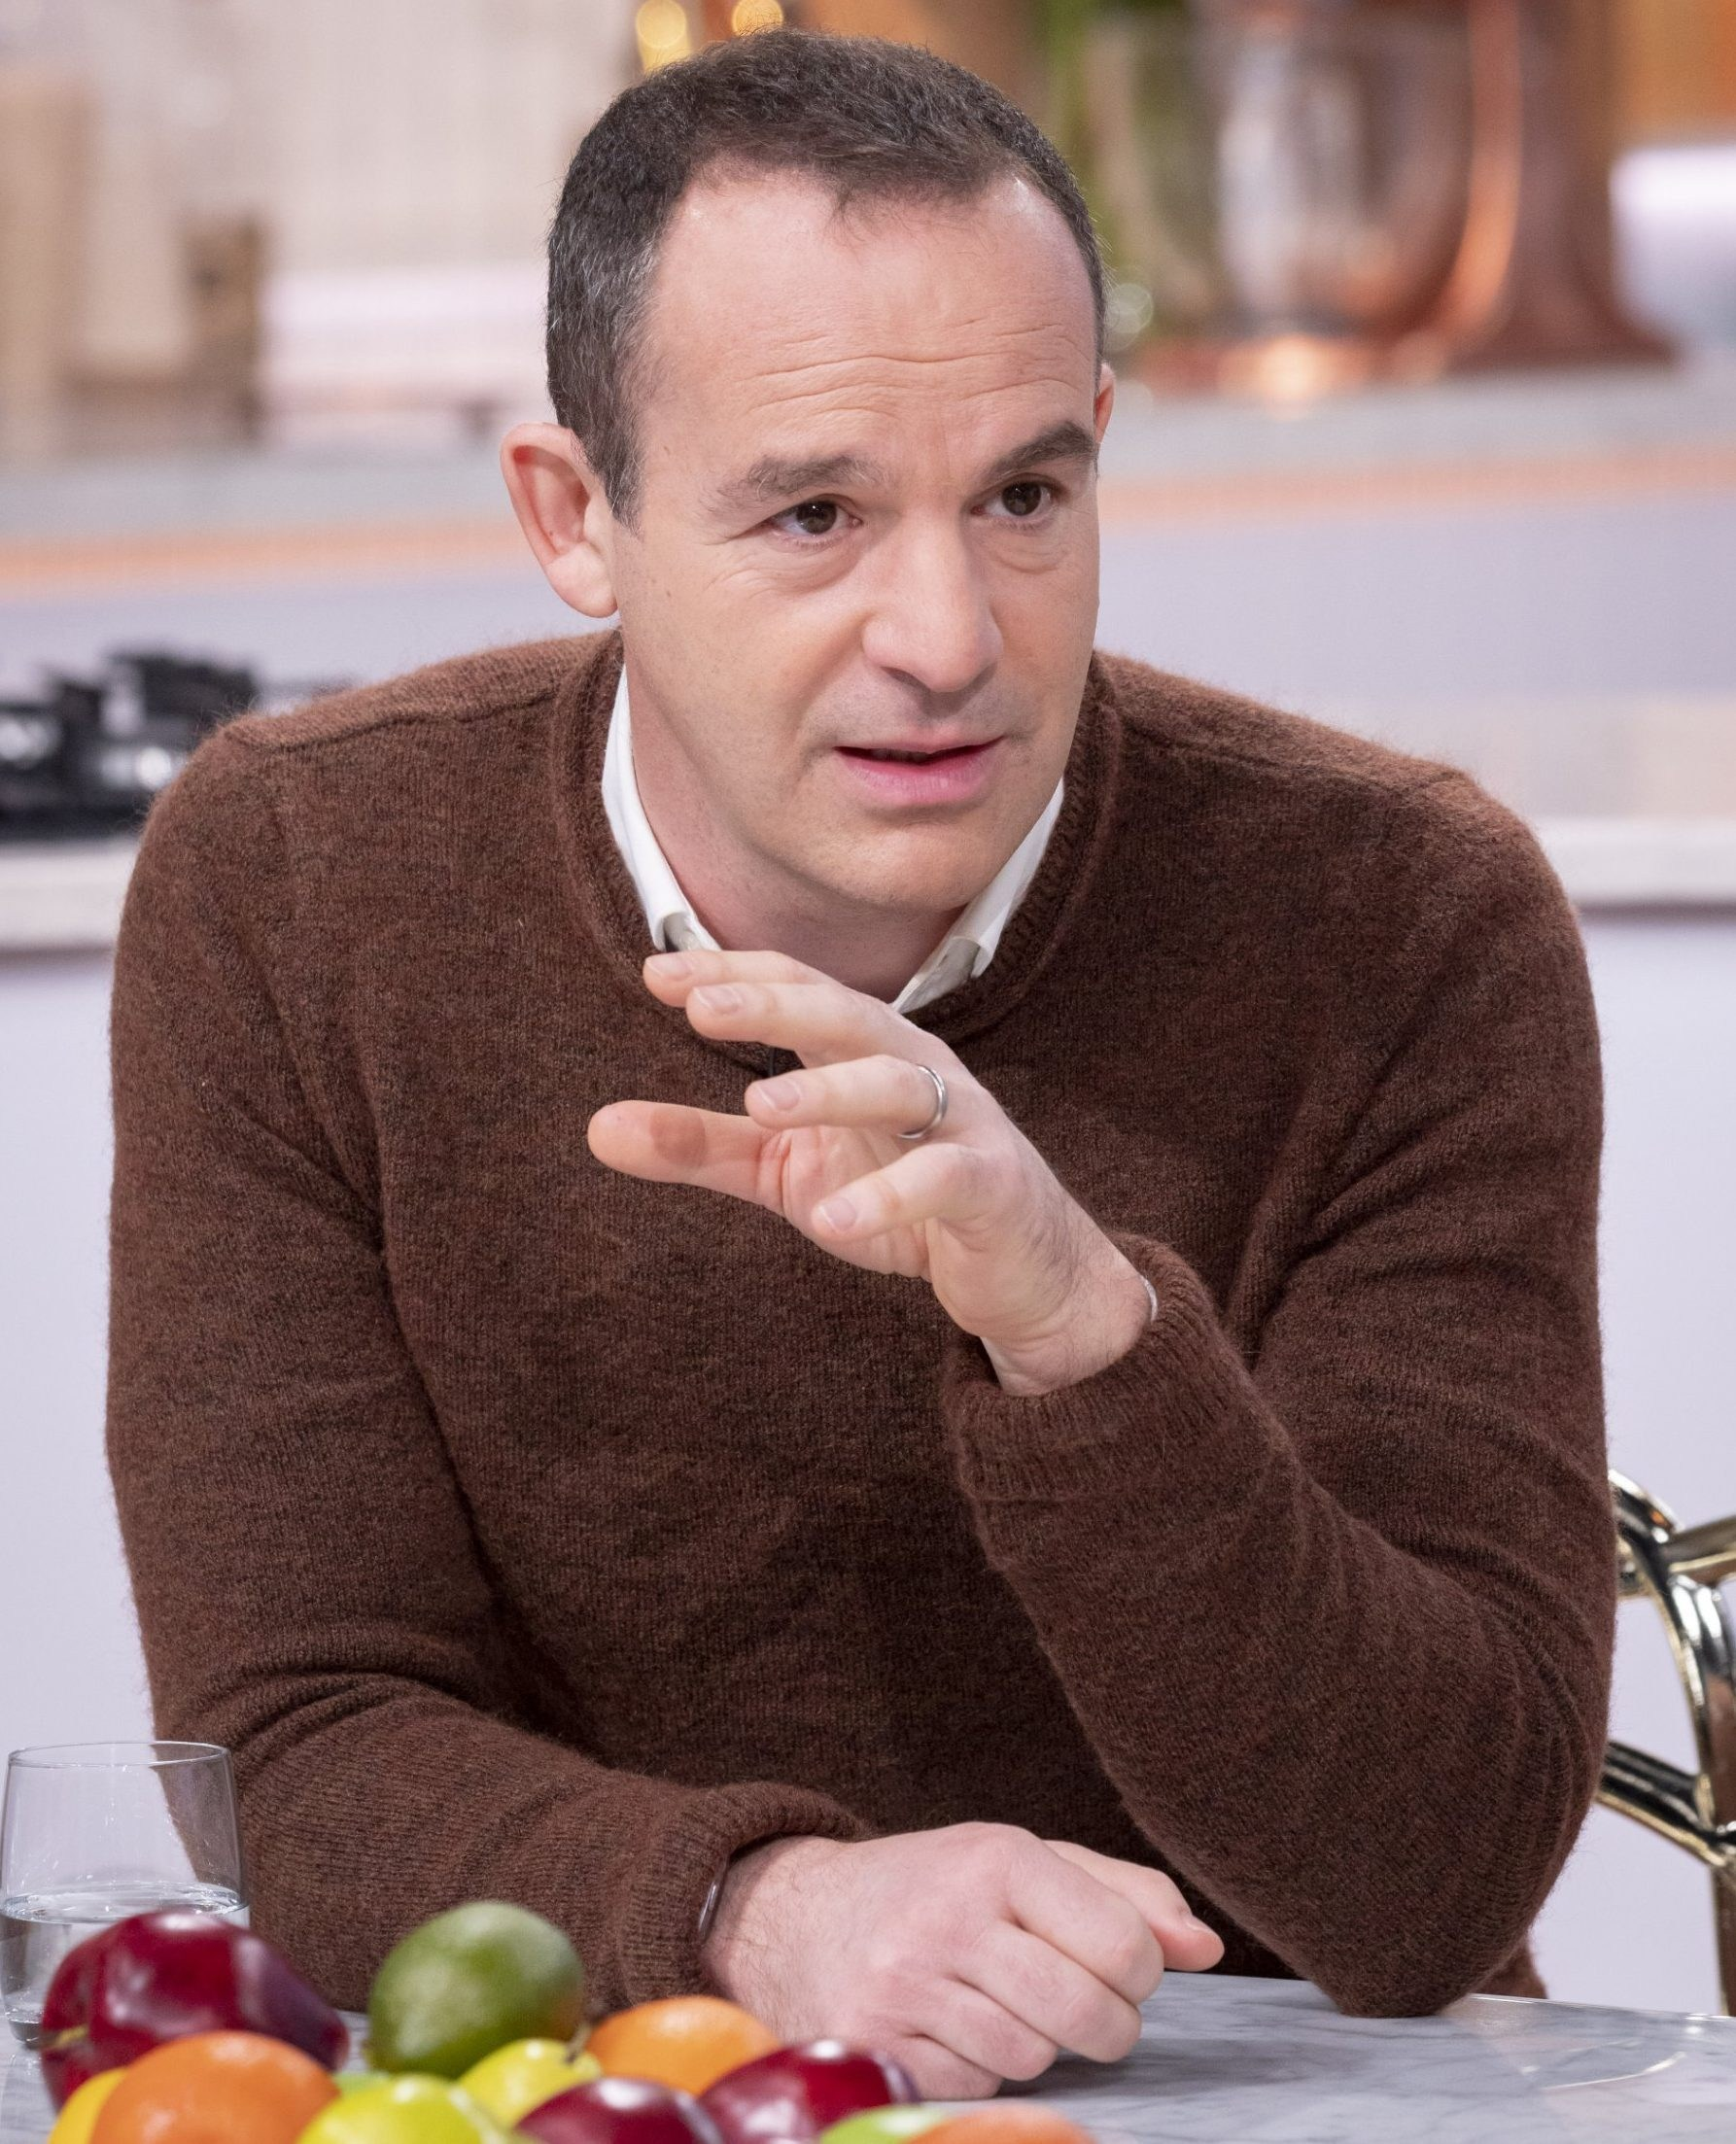 'It's the greatest form of empowerment': Martin Lewis discloses heartwarming reason he wanted to become money expert on This Morning